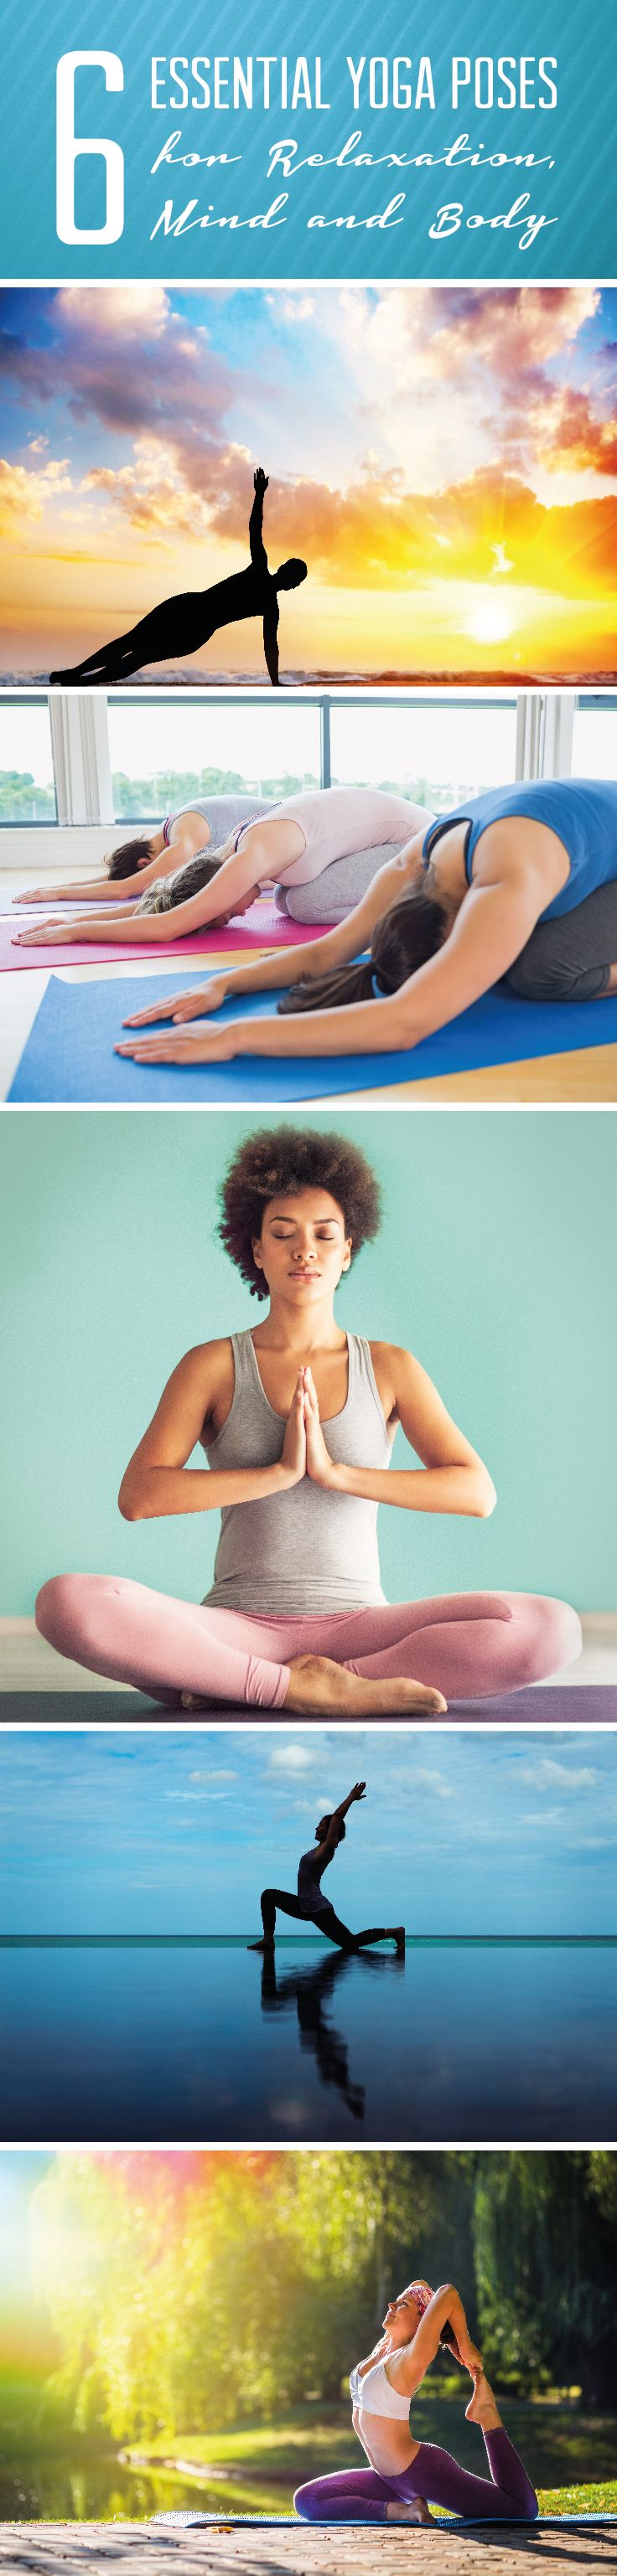 Yoga is one of the best ways to relieve stress of both the body and mind, increasing energy, focus, and overall happiness. Check out these six poses to keep you feeling namastexcellent even on your most hectic days! #yoga #weightloss